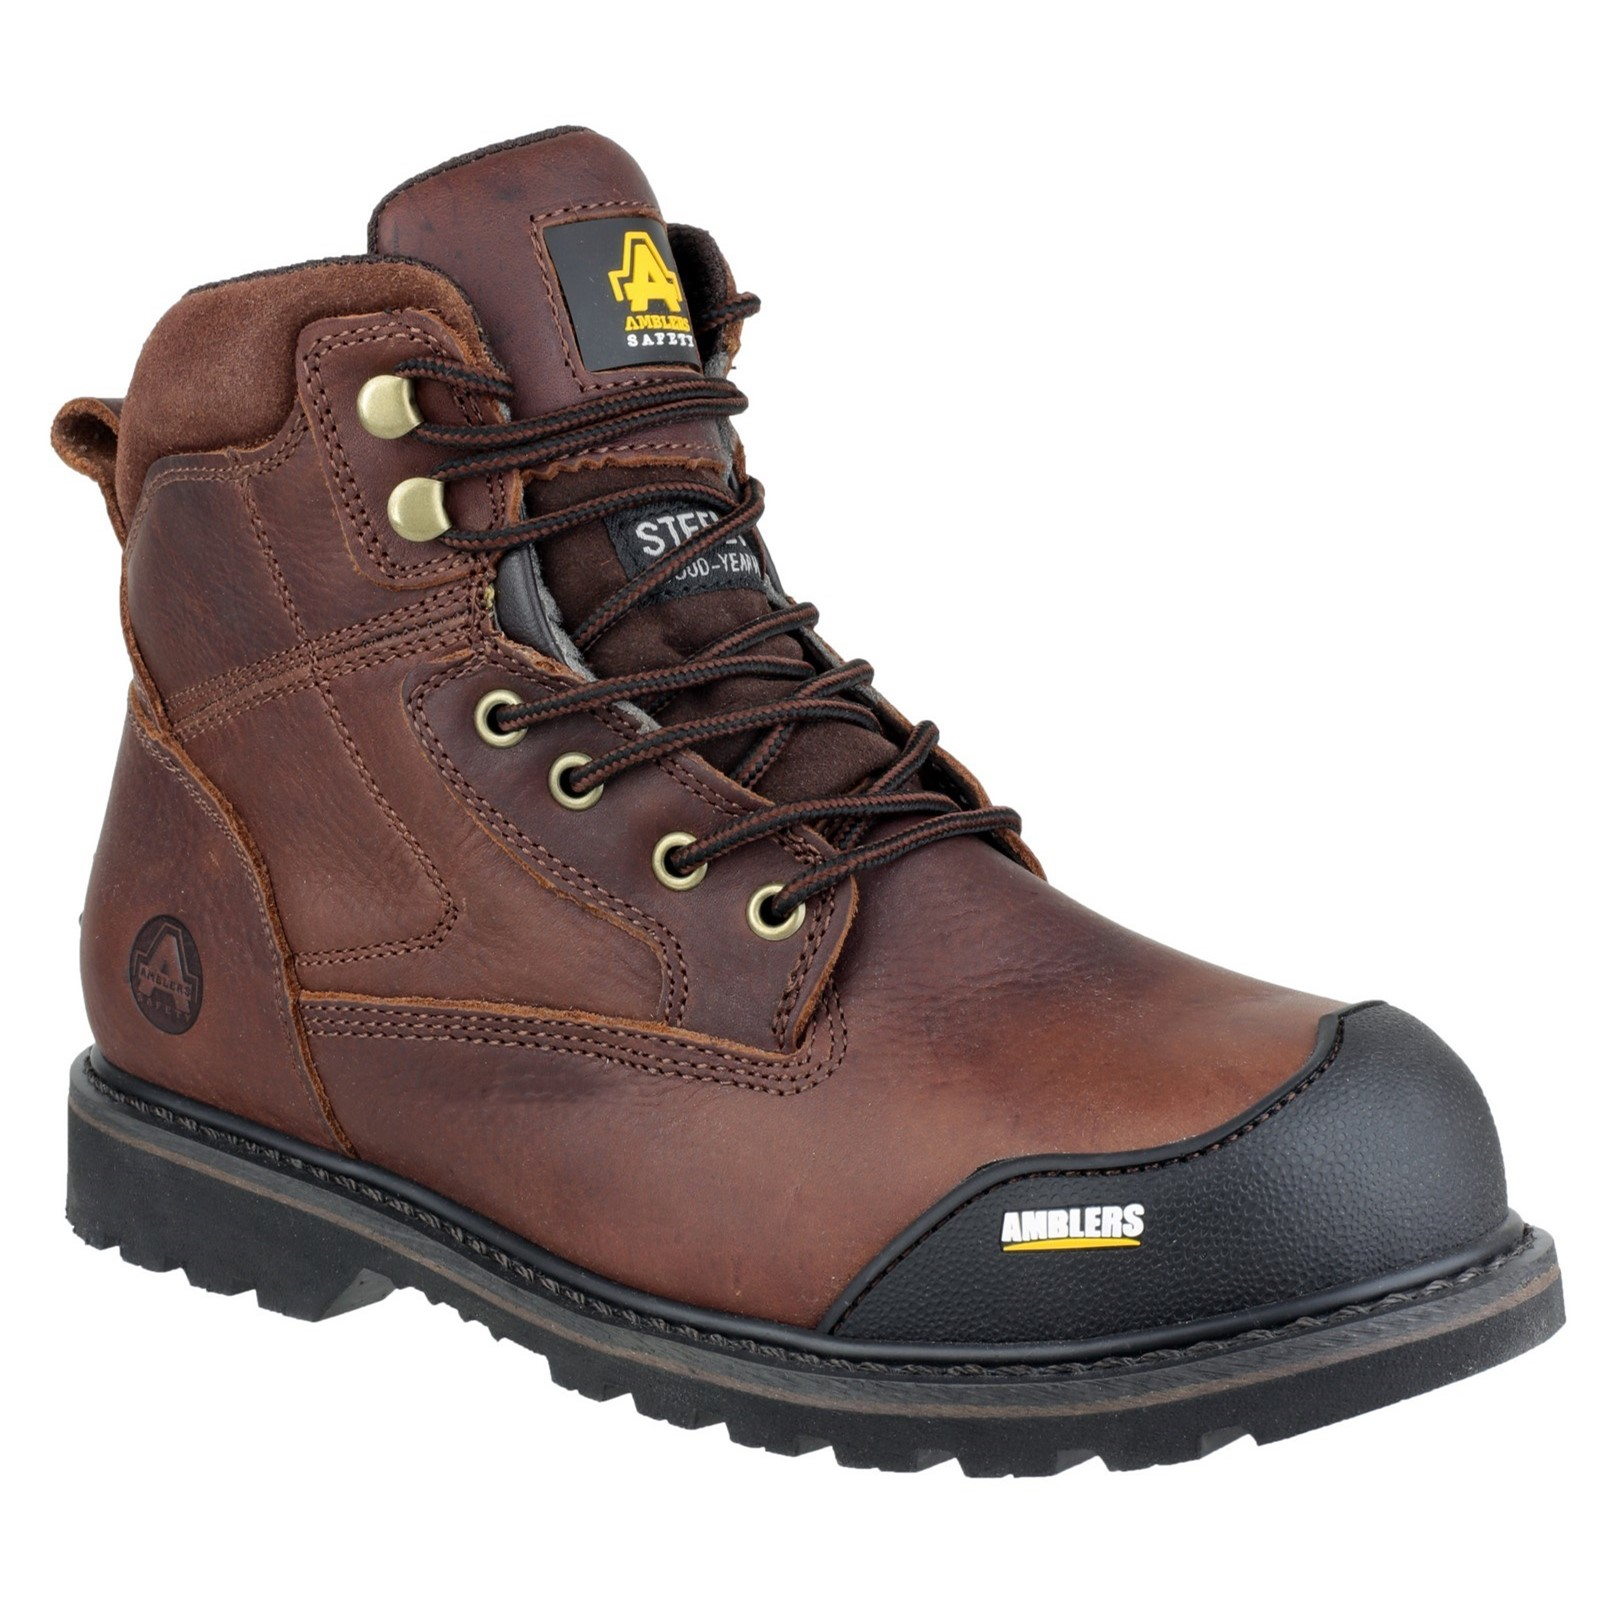 Amblers Safety Unisex FS167 Goodyear Welted Lace up Safety Boot